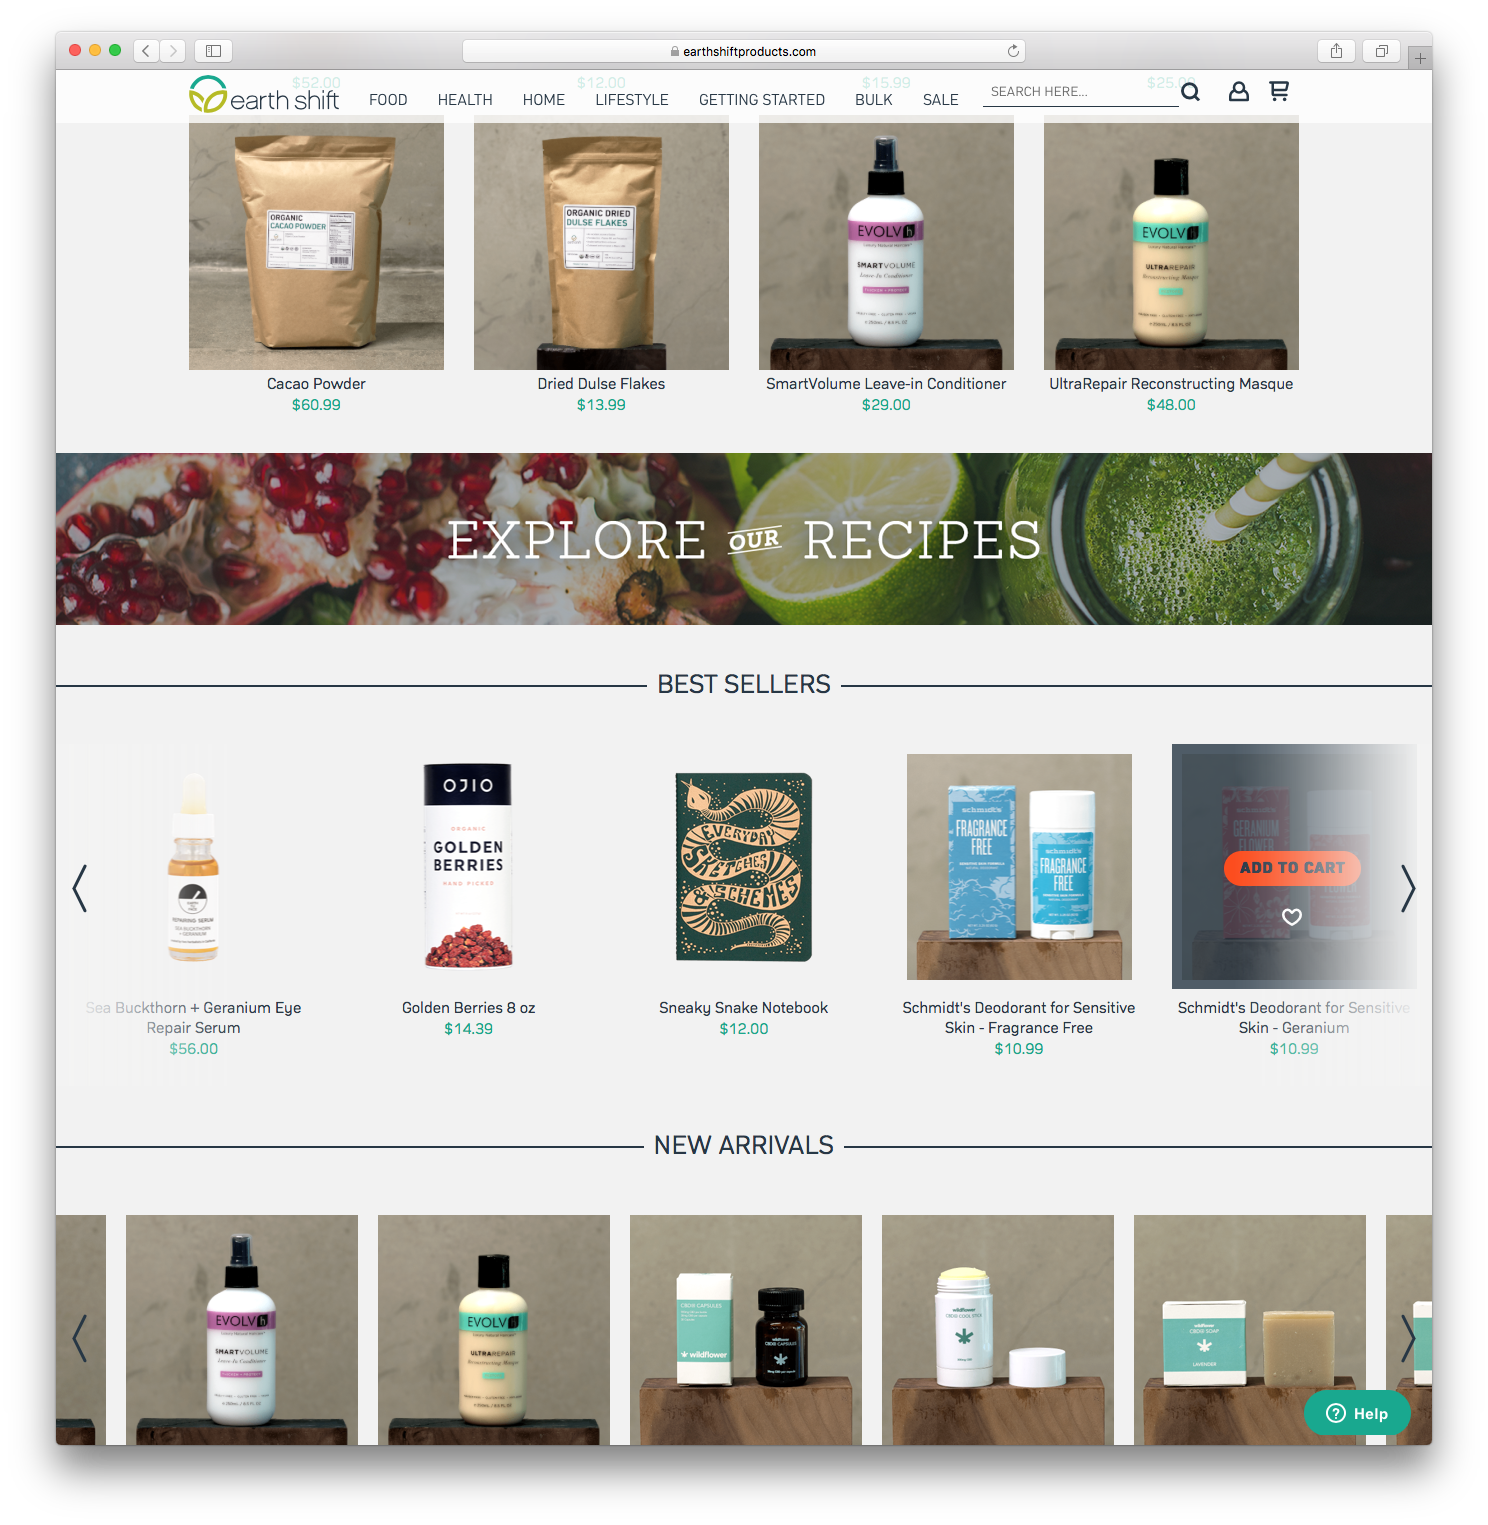 desktop Earth Shift Products home page product selection page explore recipes